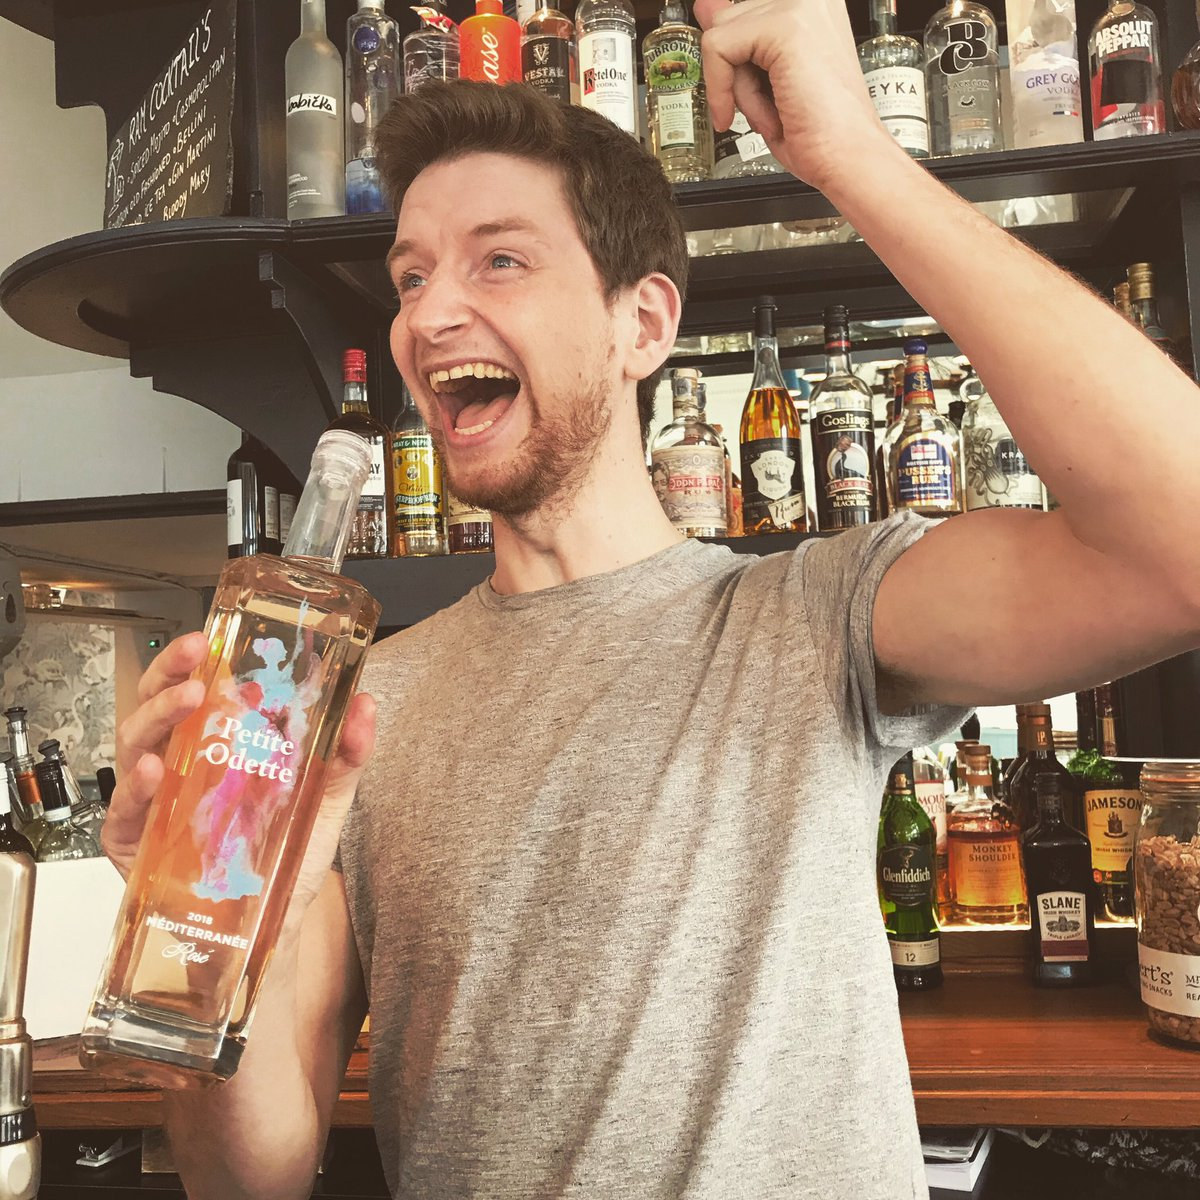 Our Dave is very excited for the #eurovisionsongcontest finals🎤Which we will be showing live on our screens📺THIS SATURDAY MAY 18th @ 8.30pm 🍻Join us for a sing along and route for your home nation!!! 🥂🍾🎈🥇  #eurovision2019 #livescreening #eurovisionparty #youngspubs